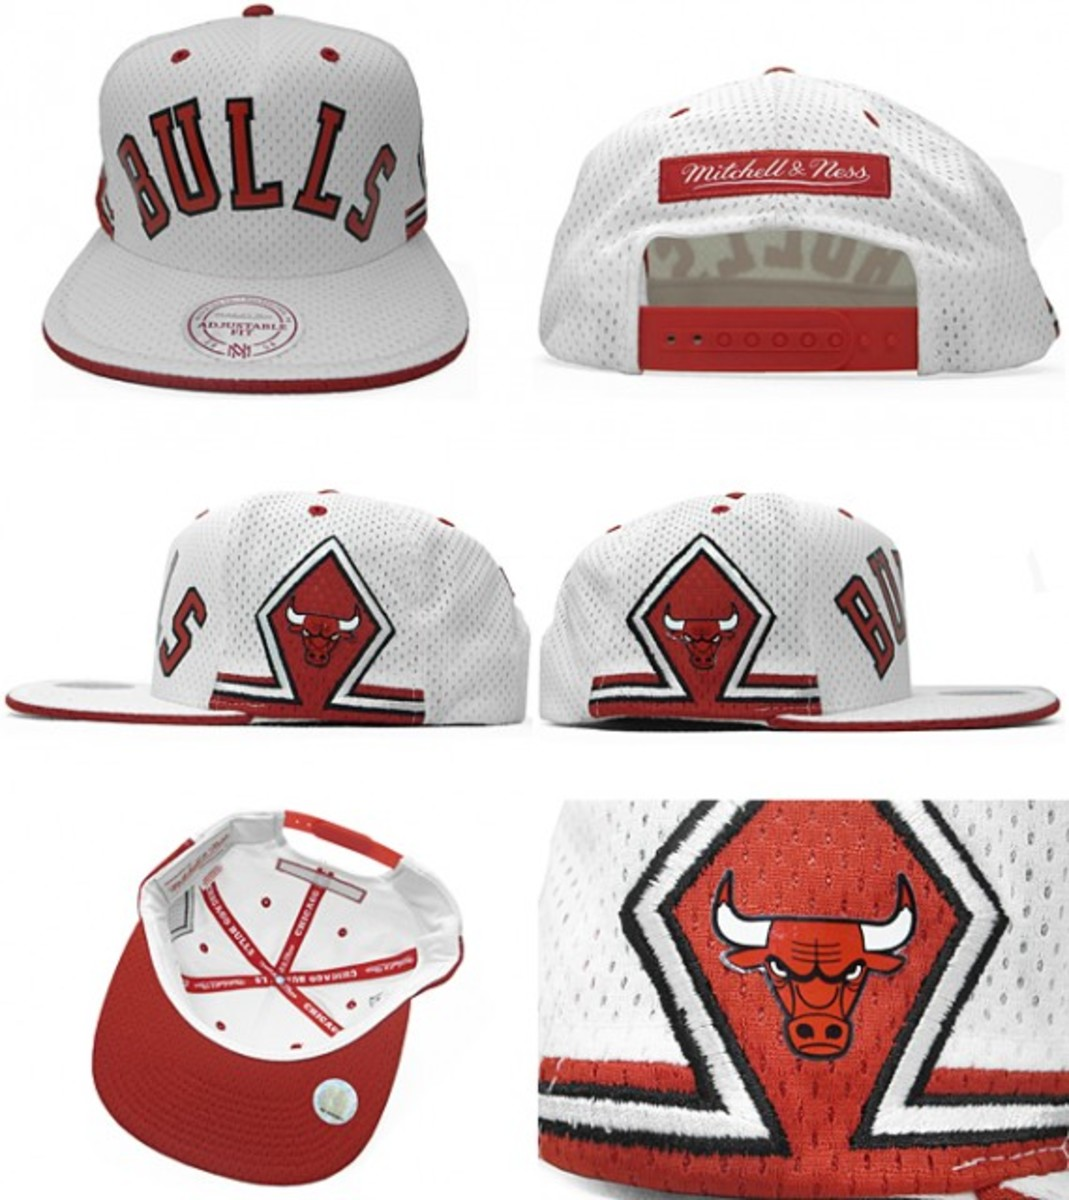 mitchell-and-ness-chicago-bulls-retro-jersey-snapback-cap-02